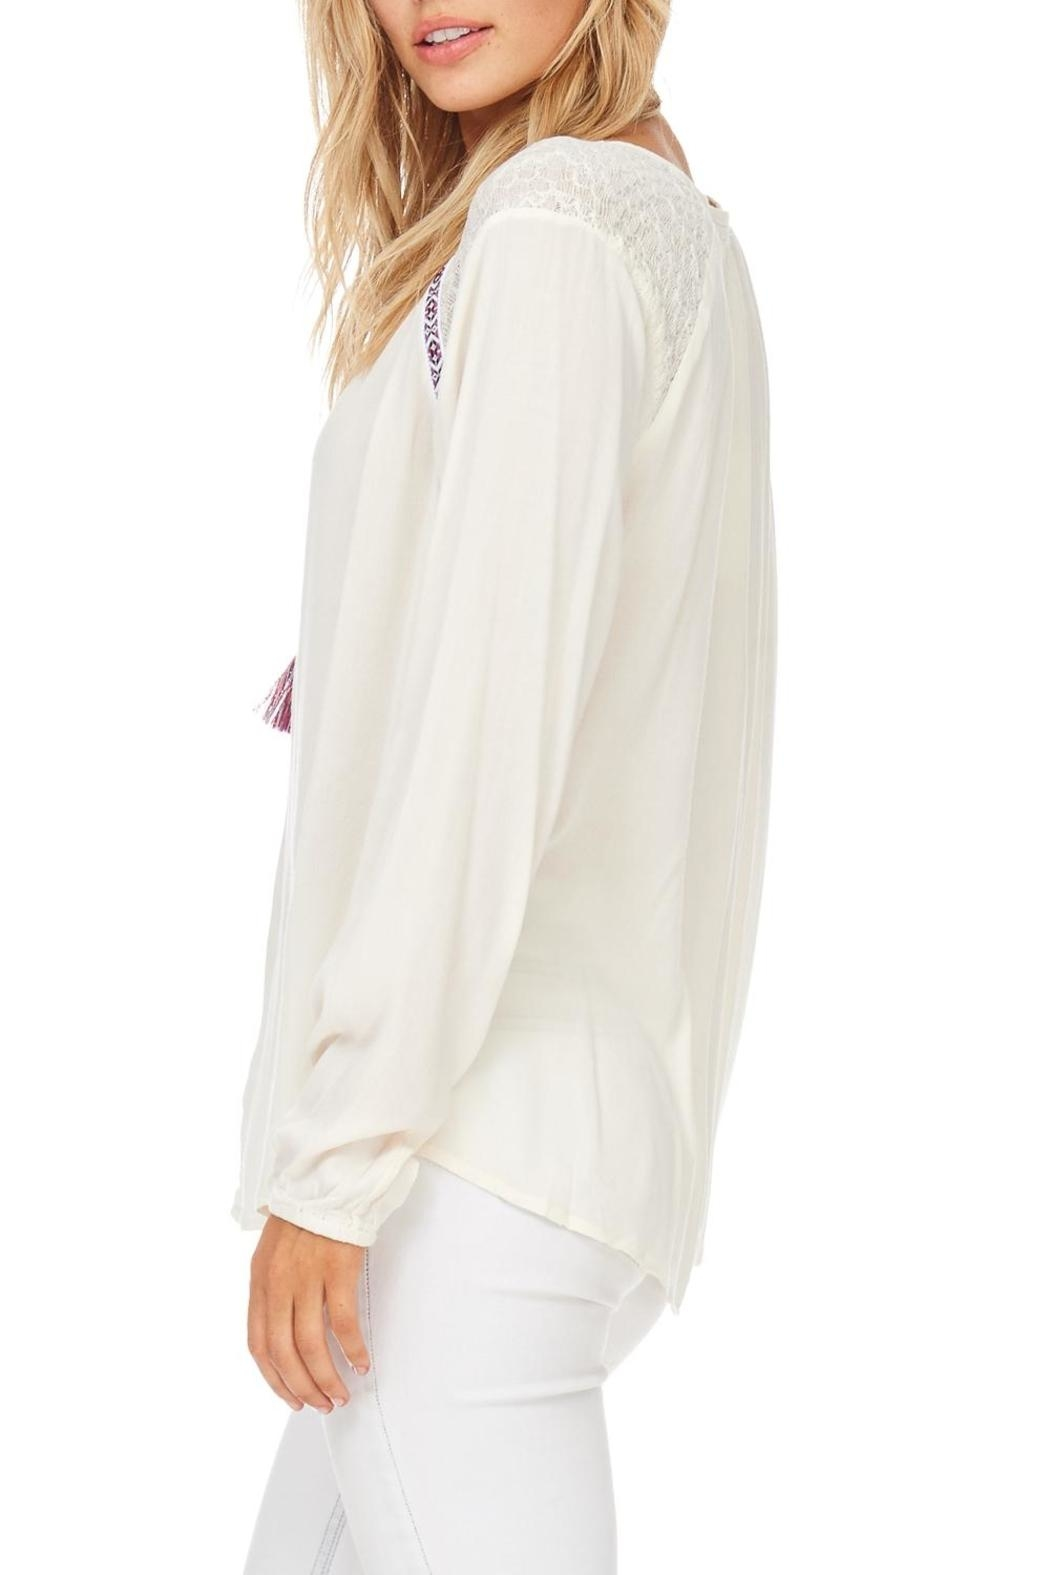 Hem & Thread Cream Embroidered Detail Blouse - Side Cropped Image